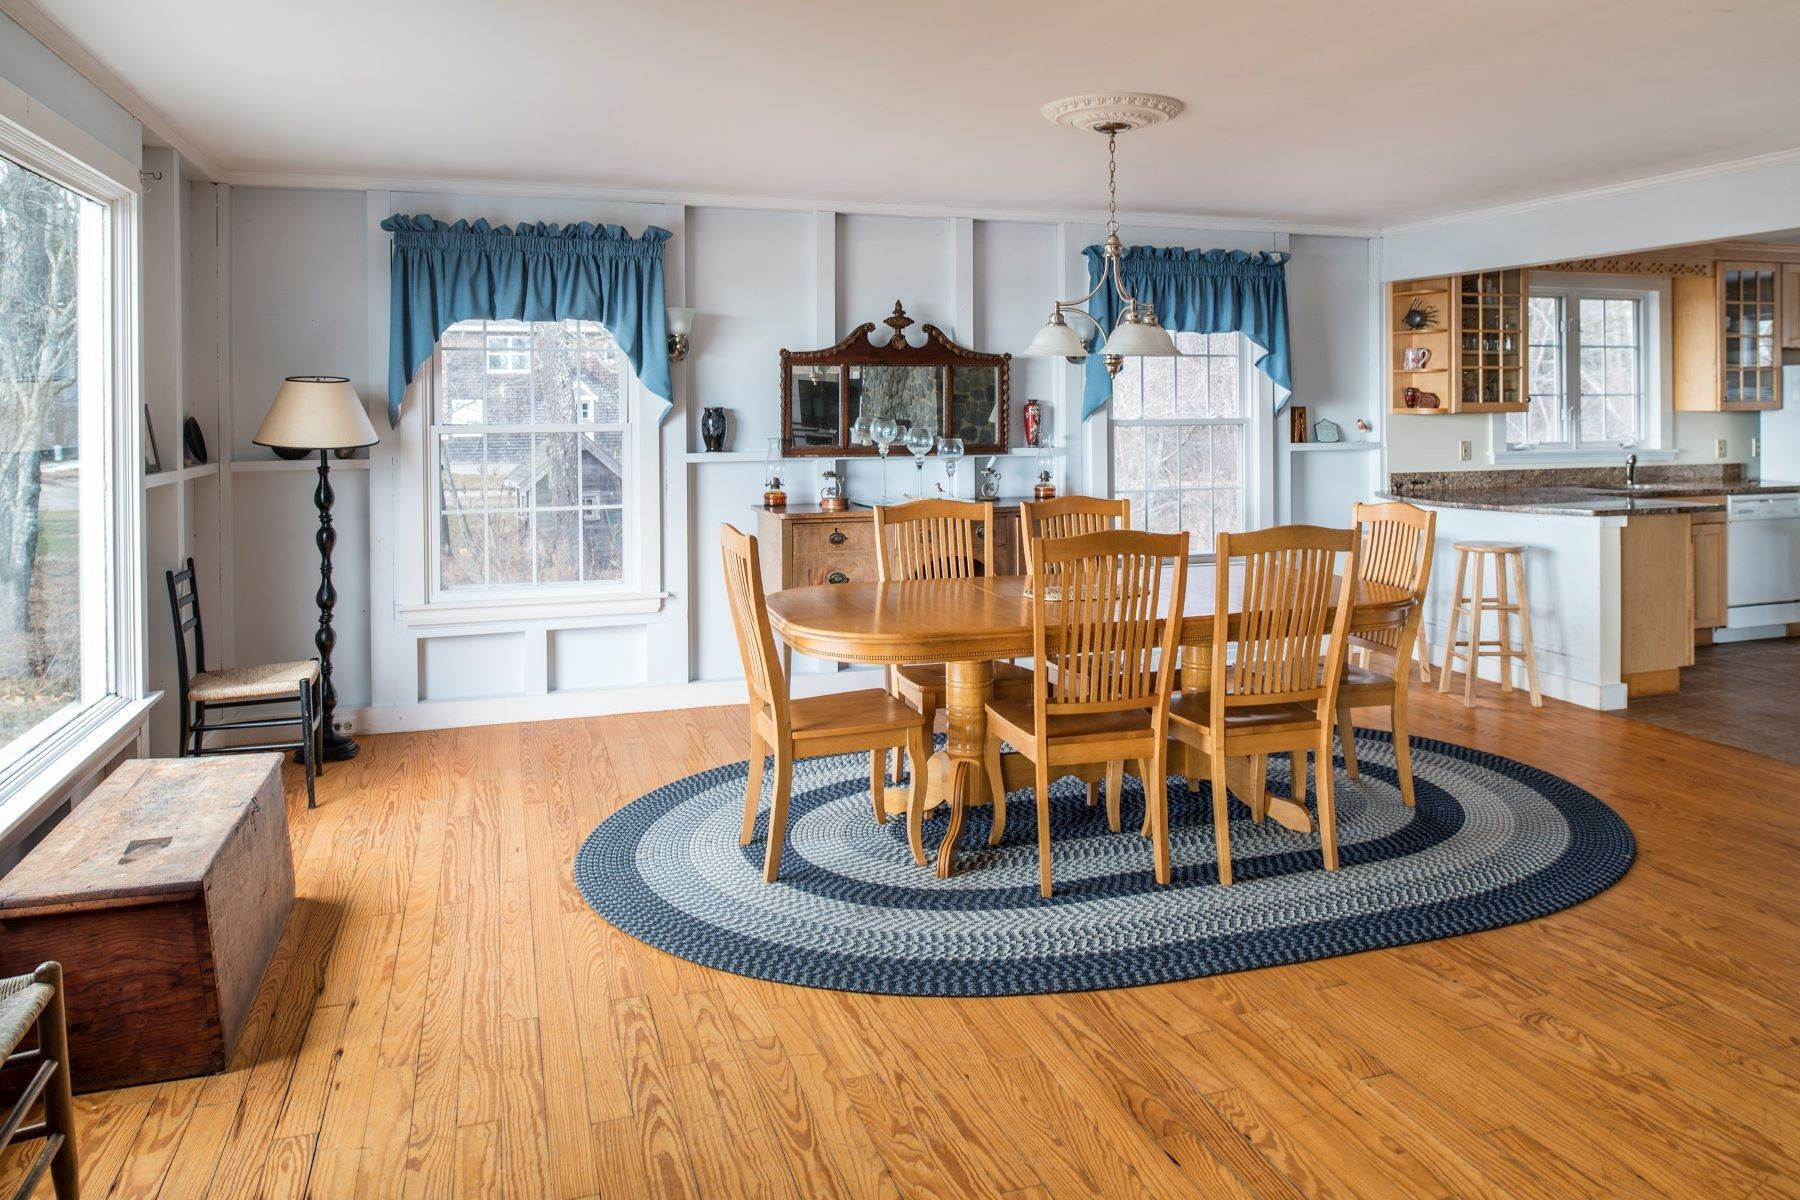 10. Other Residential Homes at Sandpiper 22 Crescent Surf Road, Kennebunk, ME 04043